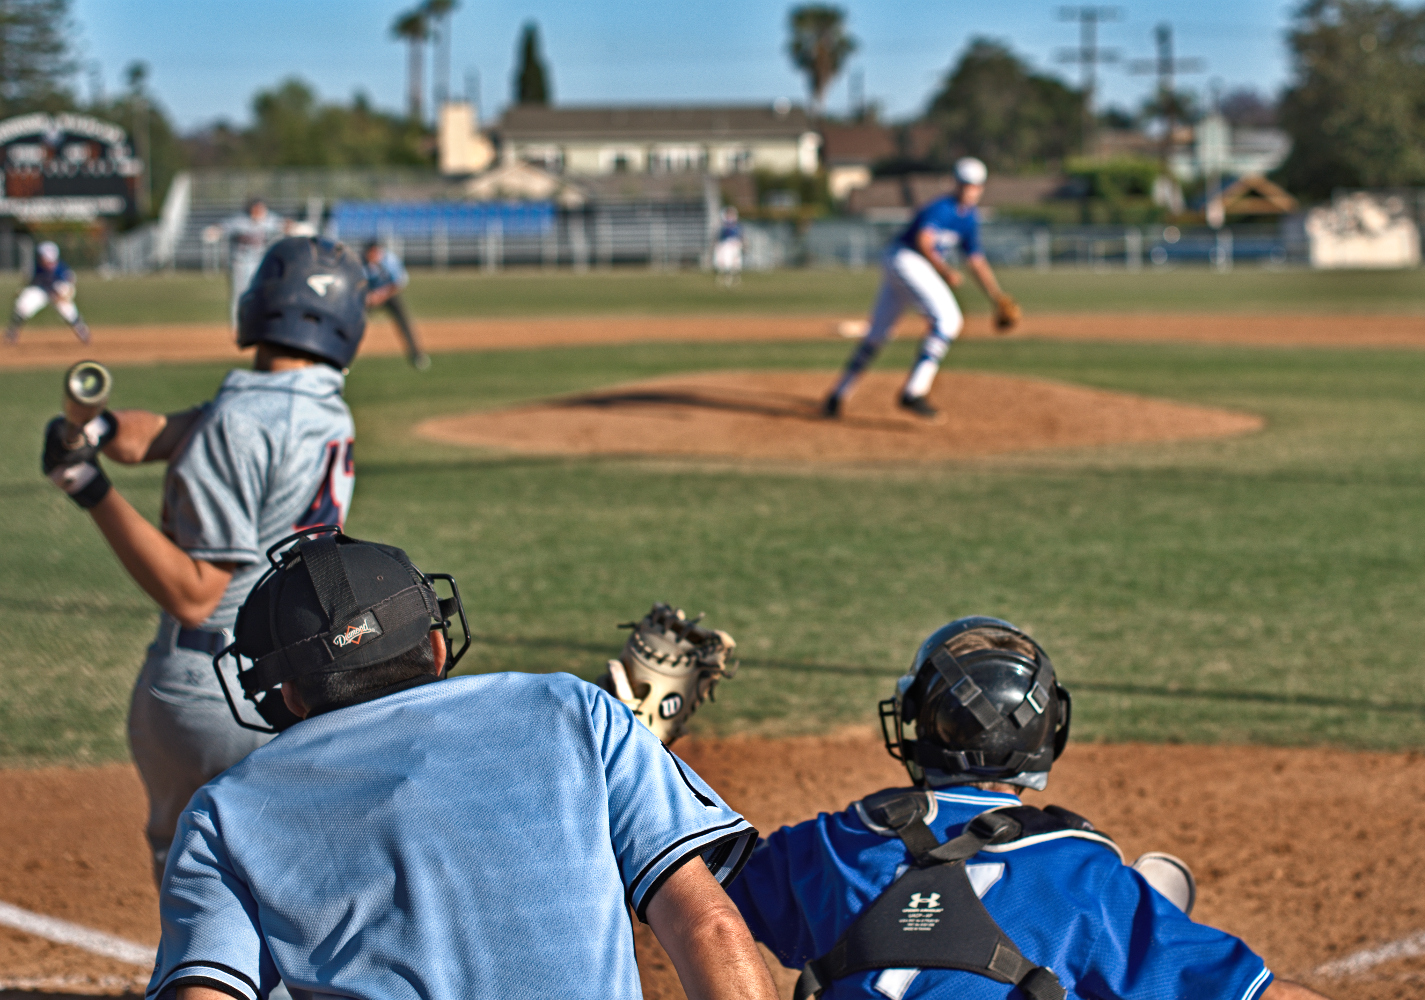 Sports Photography - Strike Three Swinging